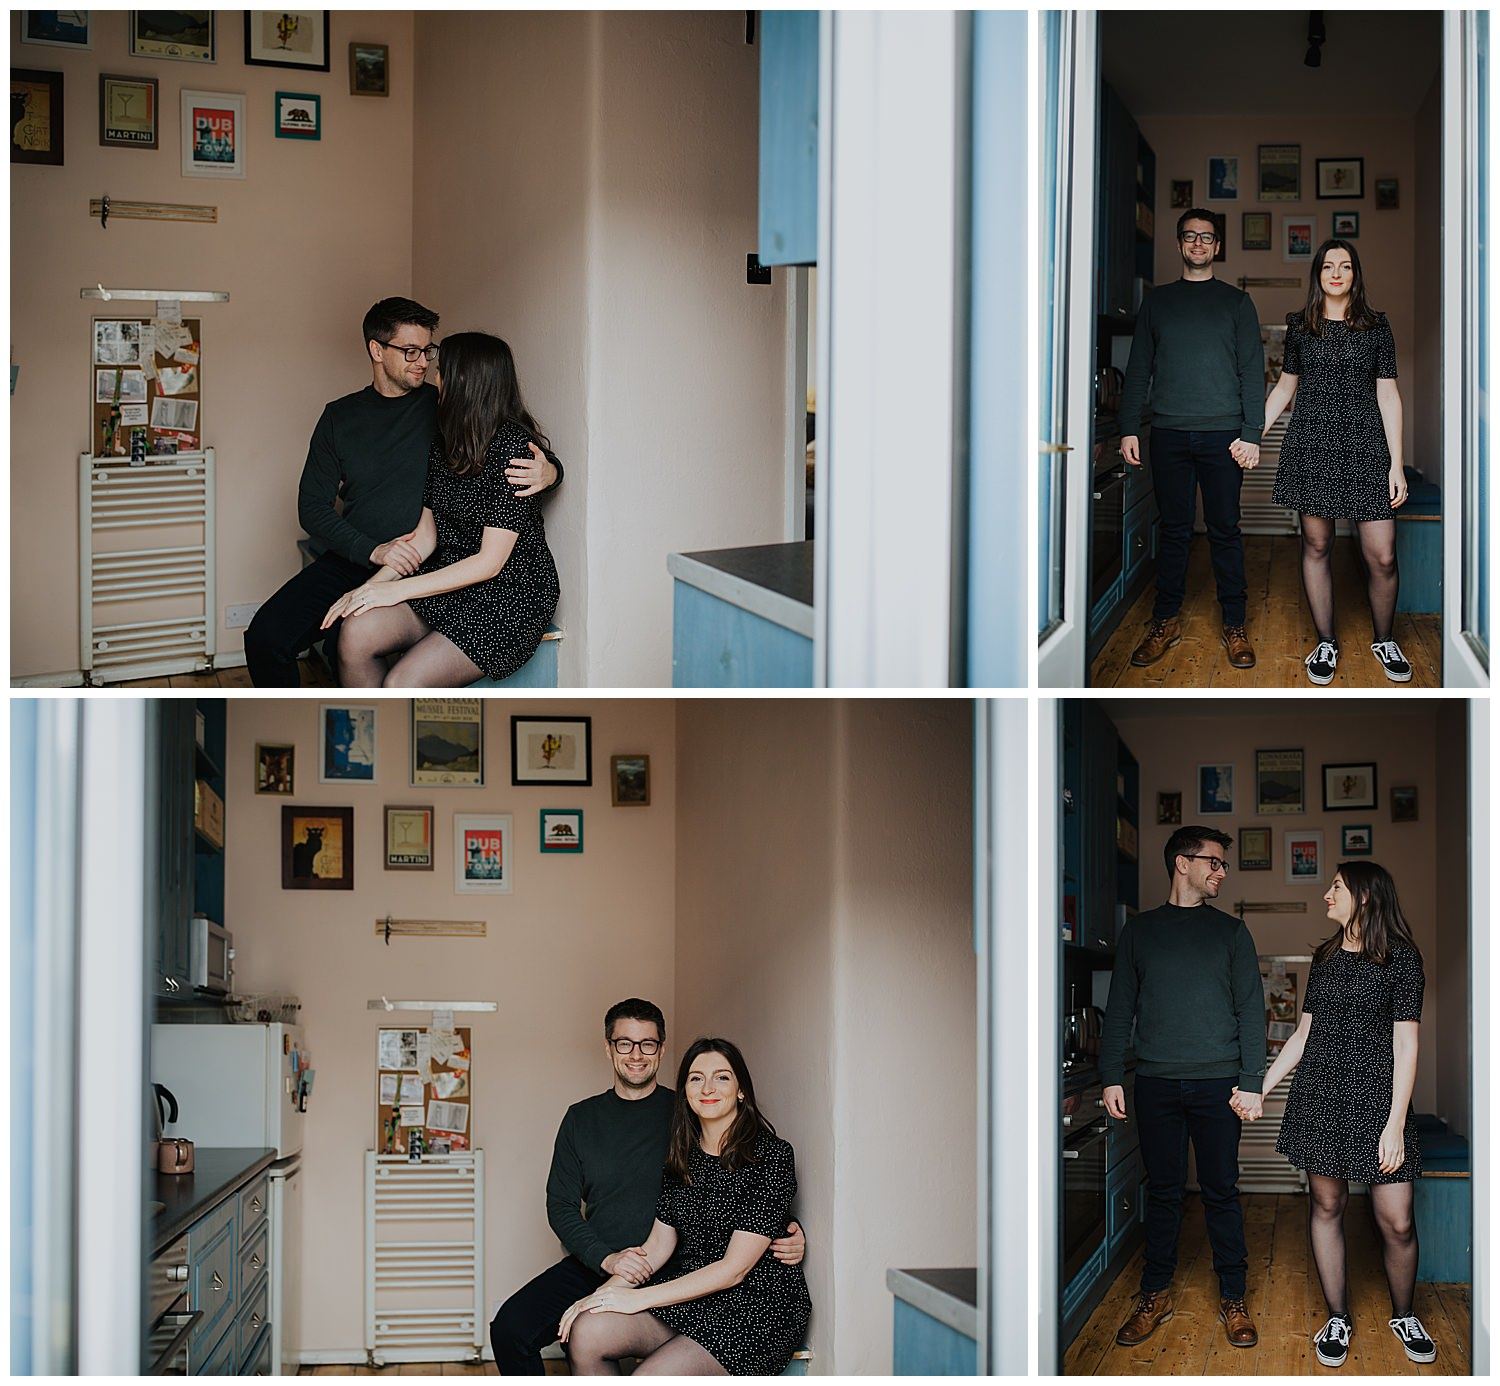 j-l-house-engagement-session-dublin-wedding-photographer-livia-figueiredo_3.jpg